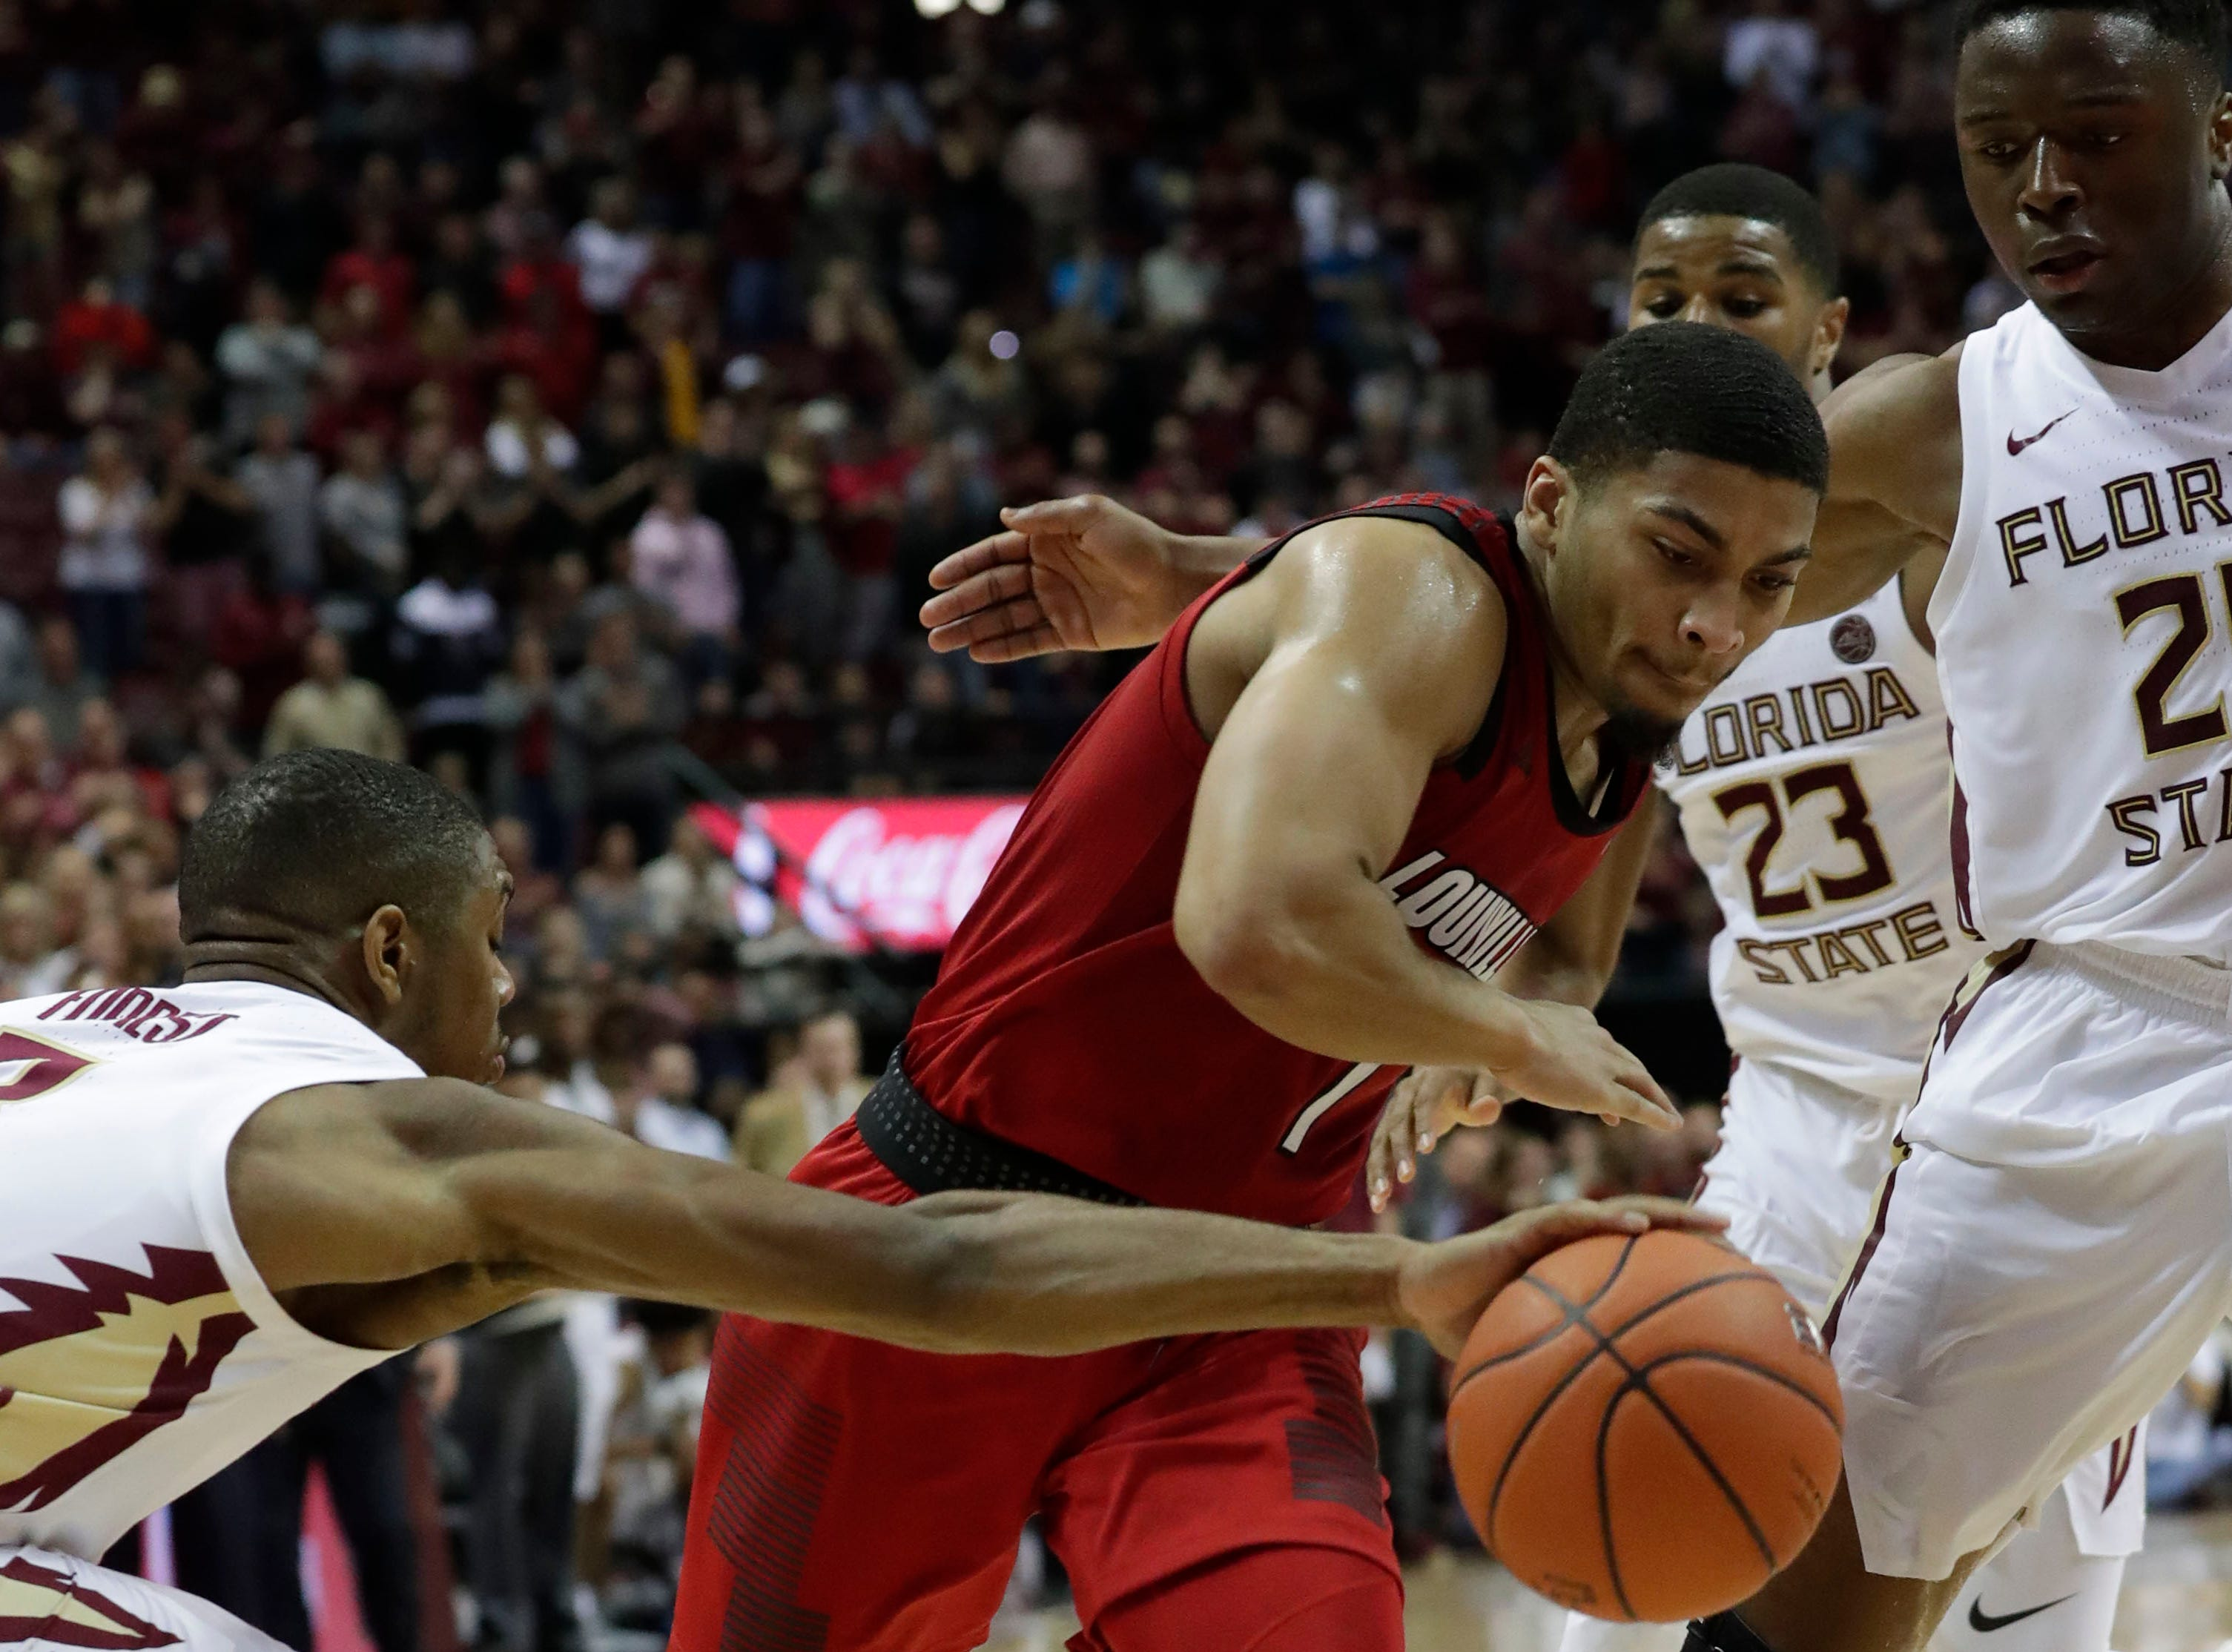 Florida State Seminoles guard Trent Forrest (3) steals the ball from Louisville Cardinals guard Christen Cunningham (1) as the Florida State Seminoles host the Louisville Cardinals at the Tucker Civic Center, Saturday Feb. 9, 2019.